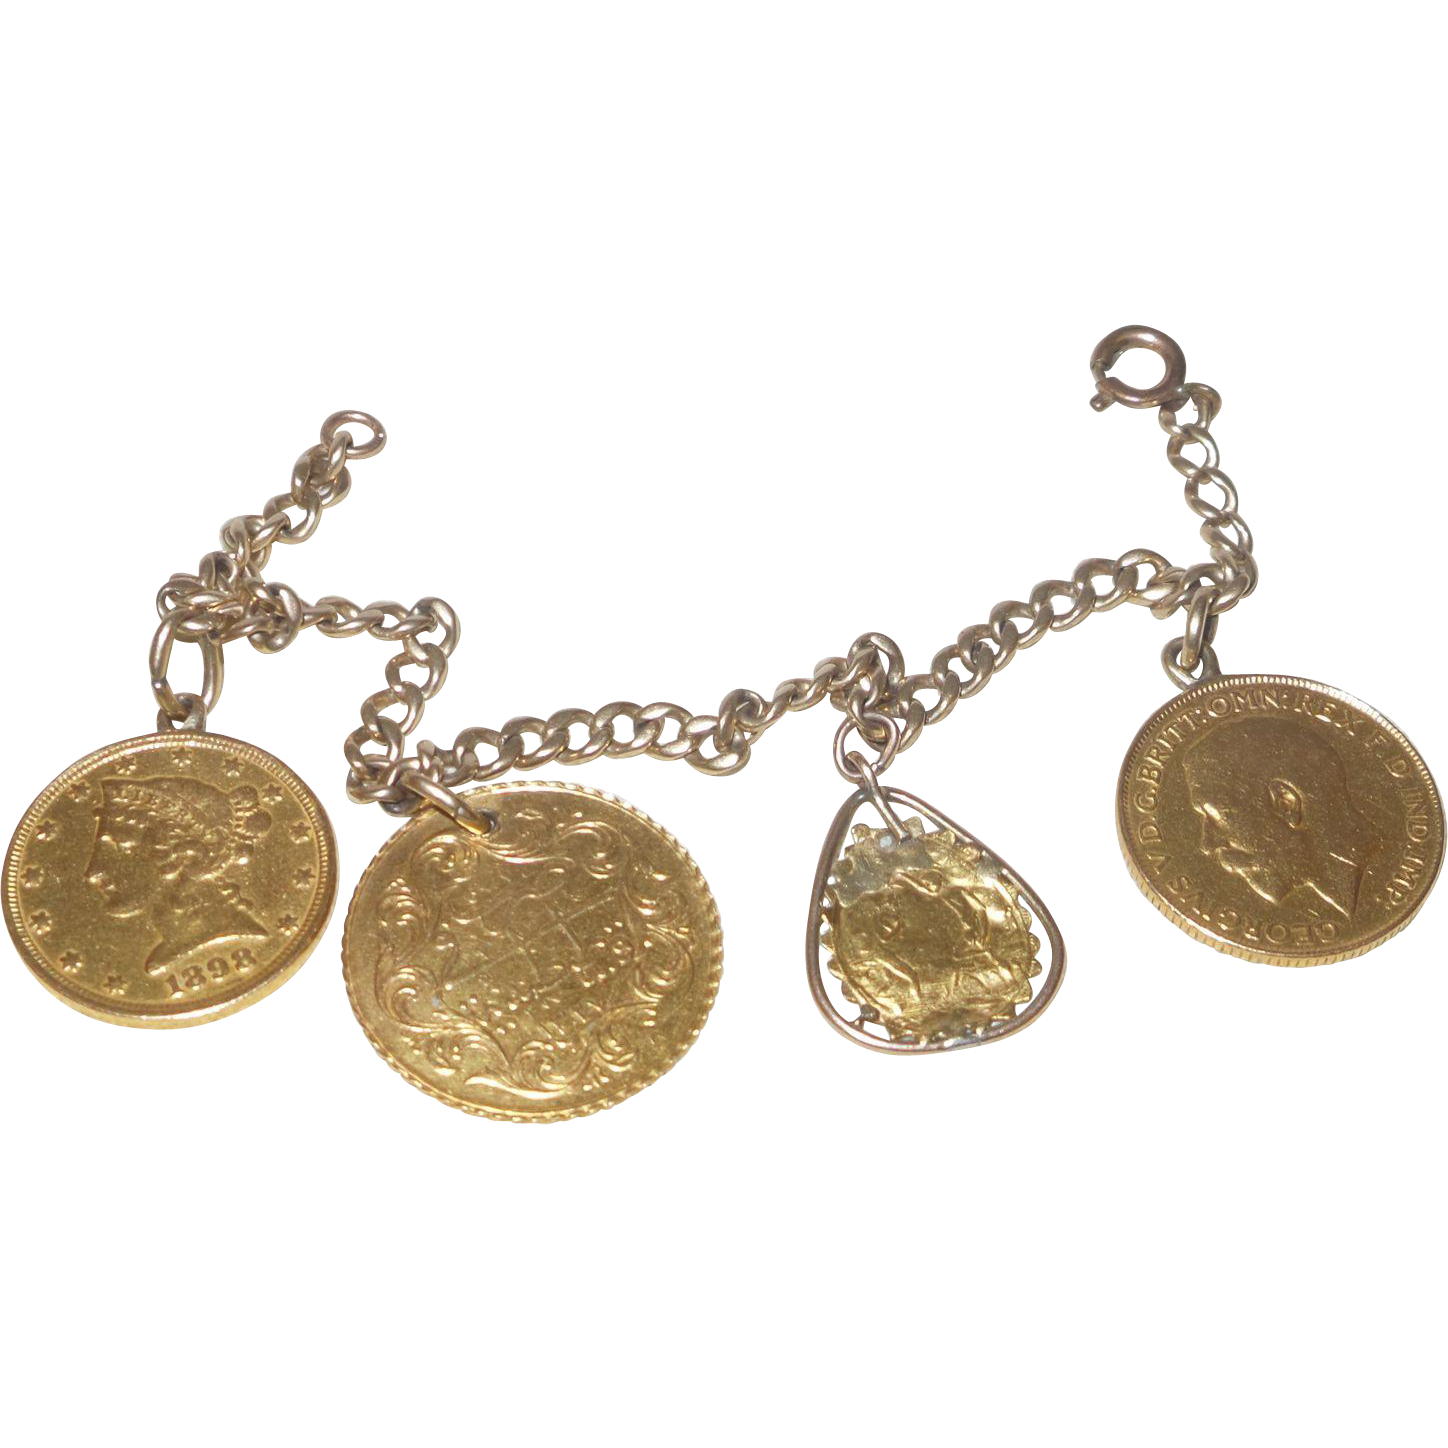 Antique Gold Charm Bracelet: Vintage 14K Yellow Gold Charm Bracelet With Gold Charms